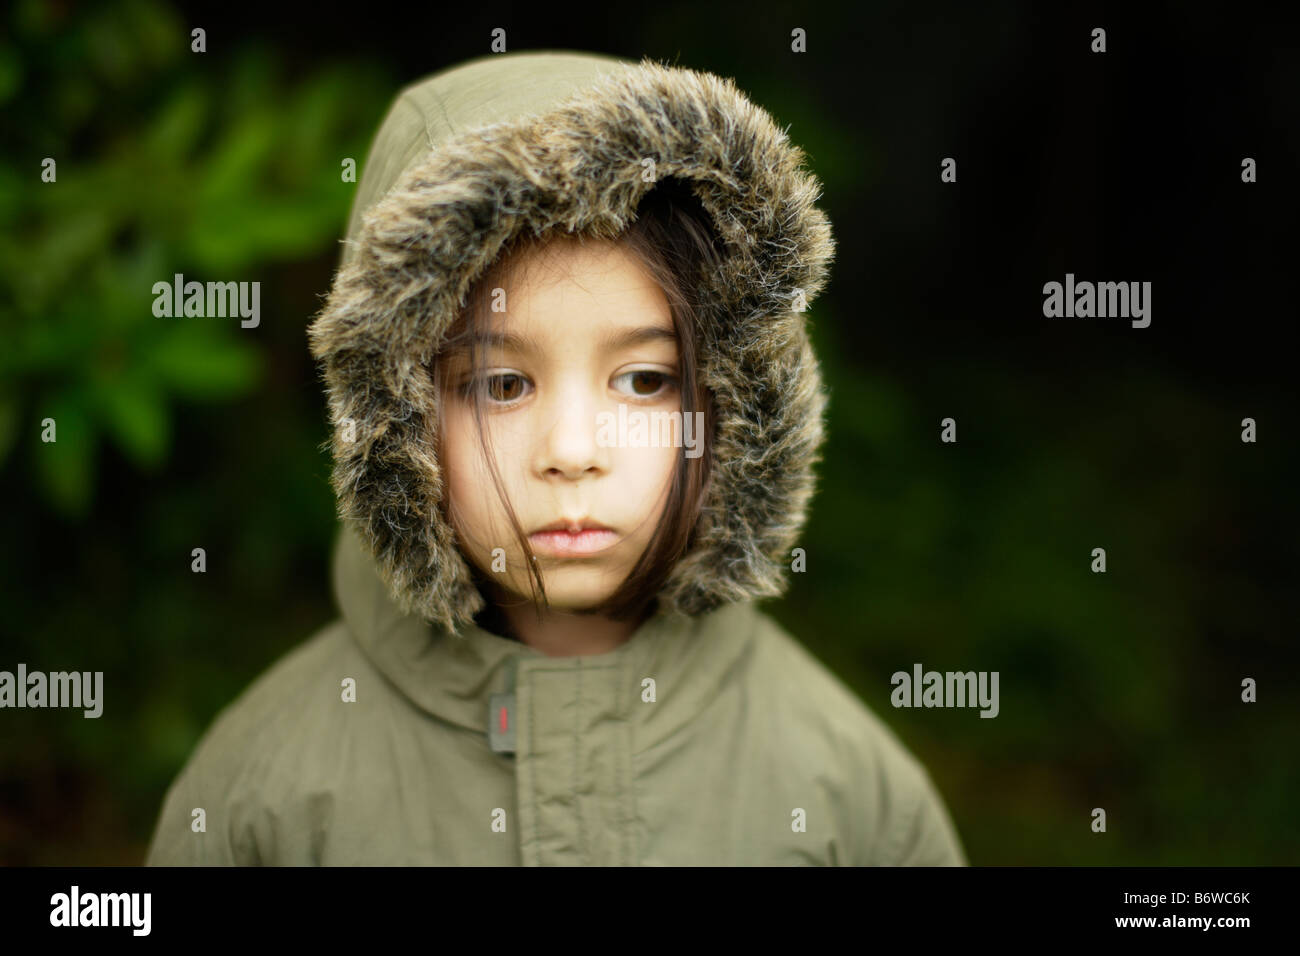 Child wears Parka coat with hood zipped up Girl aged five years - Stock Image